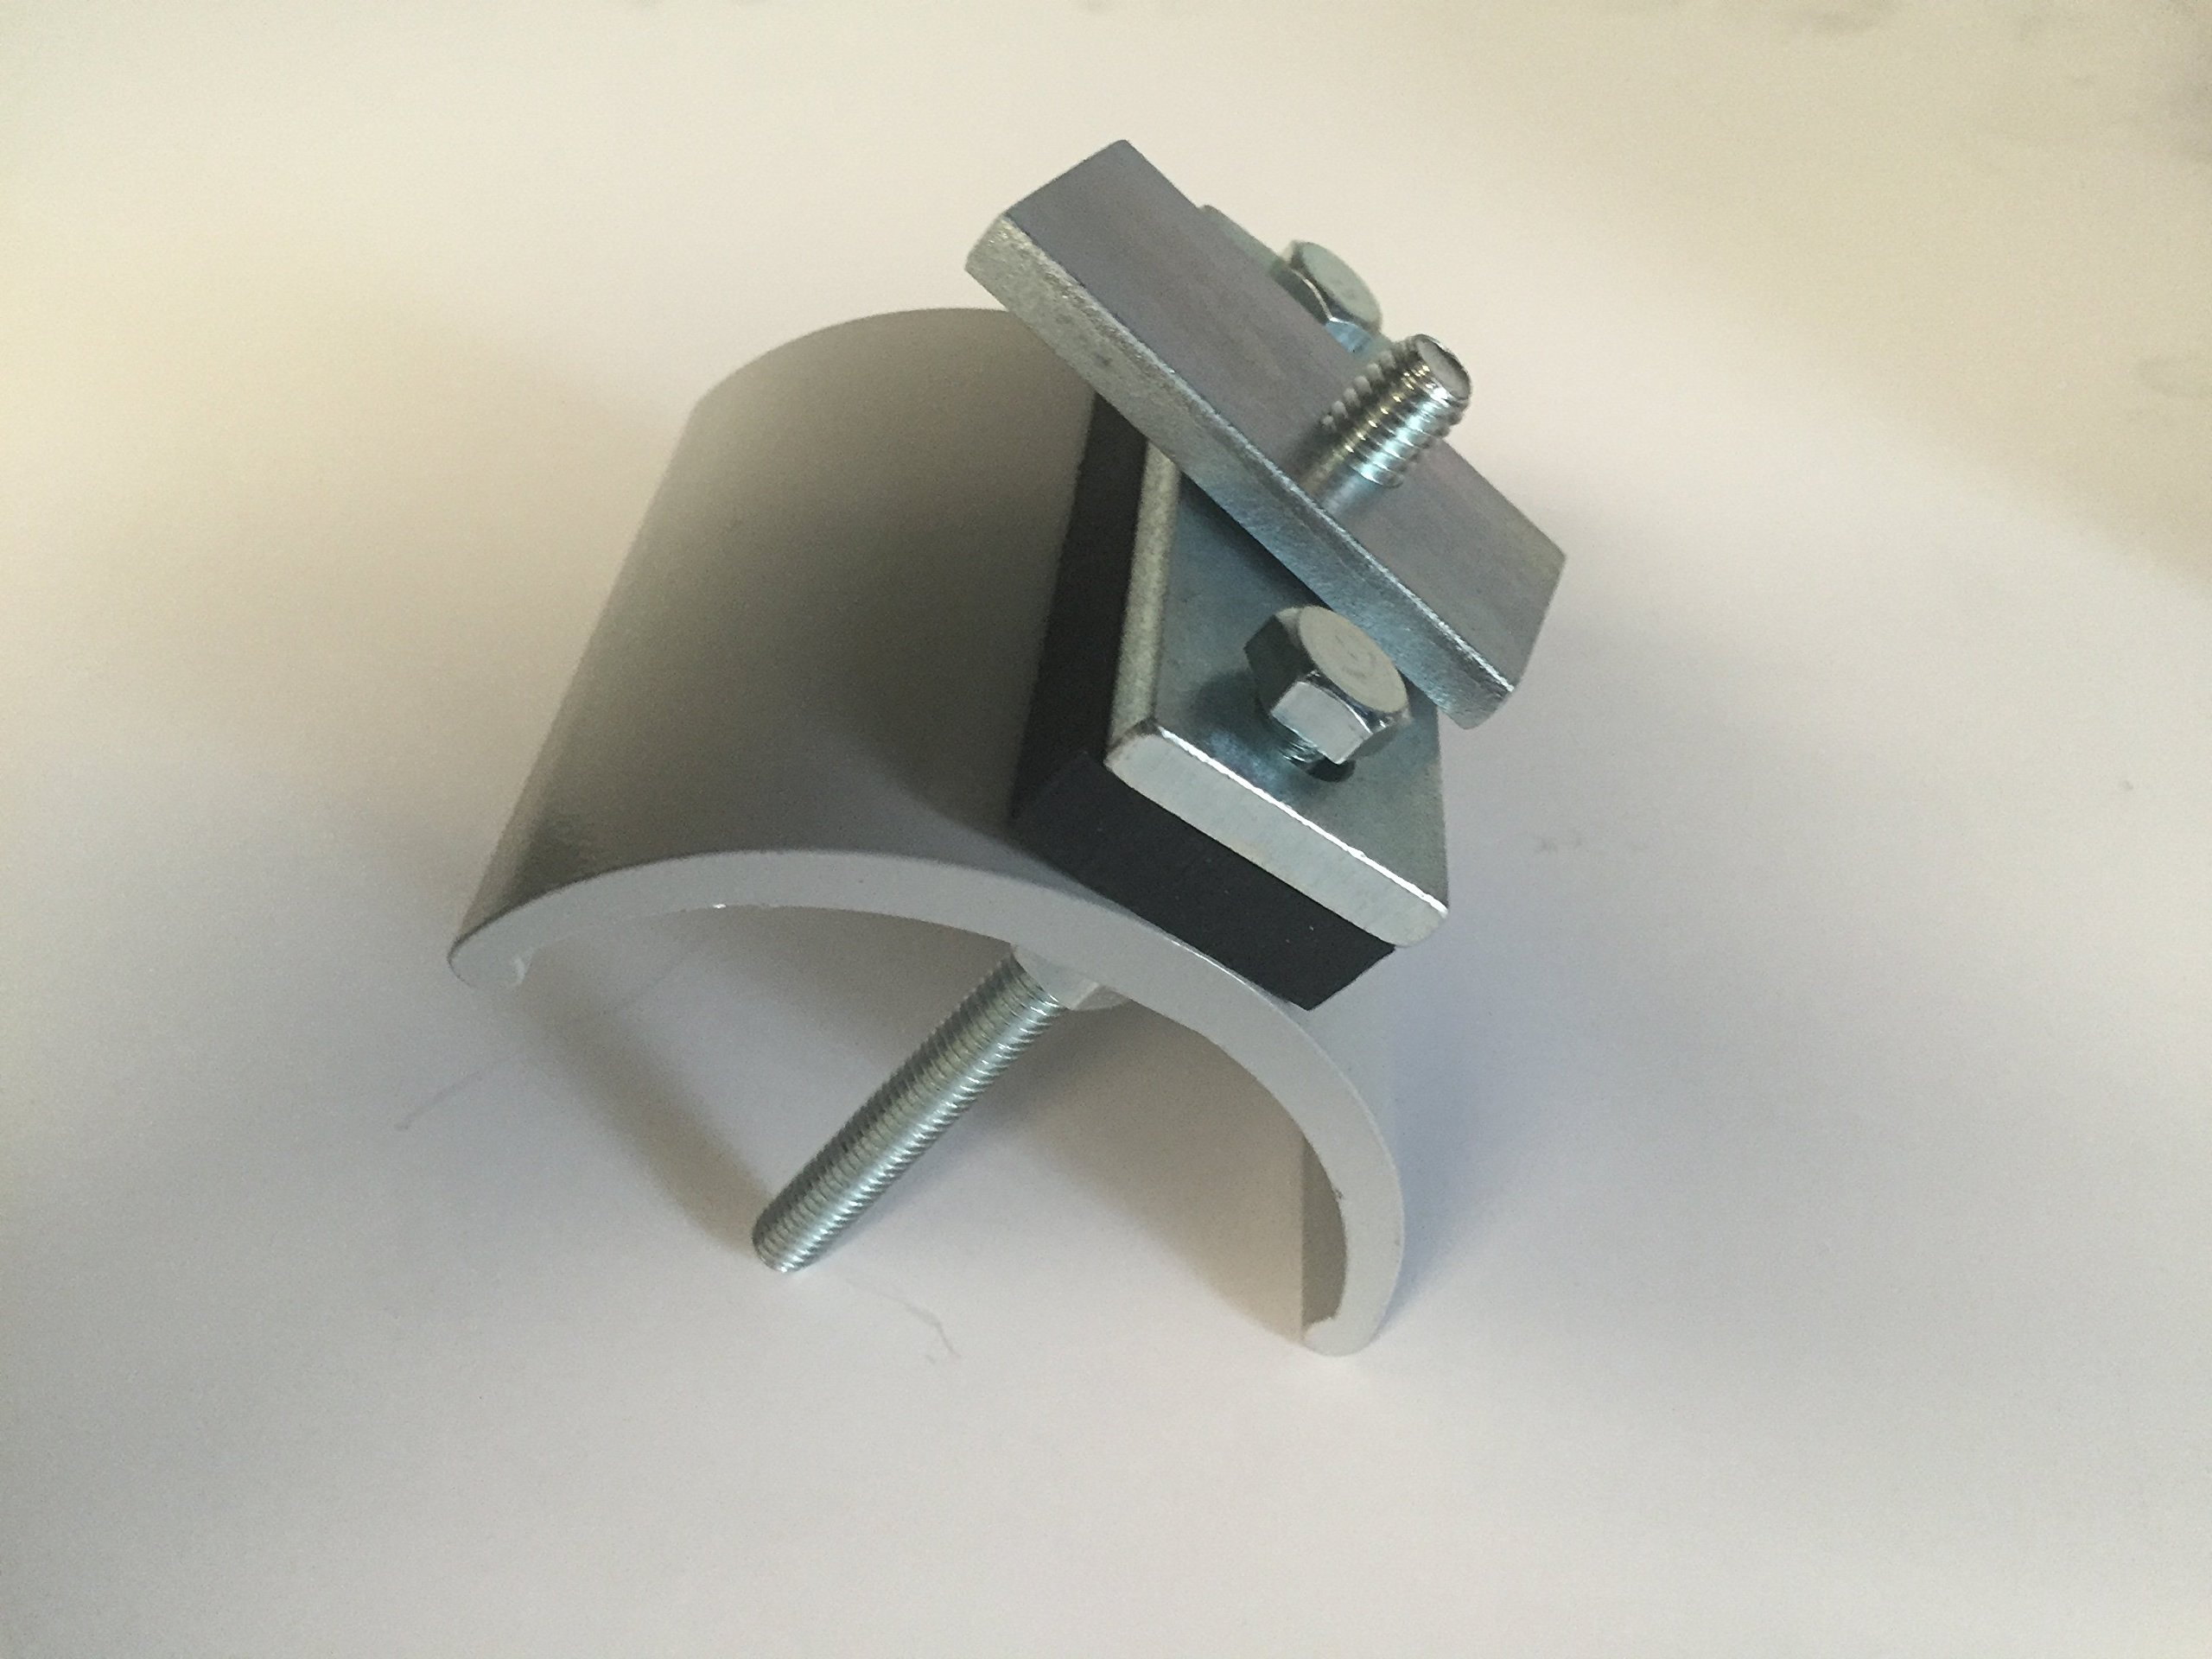 Aero-Motive Festoon End Clamp 5400 Series Steel End Clamp For Flat Electric Cables up to 0.45 Inches Thick: 5412-2